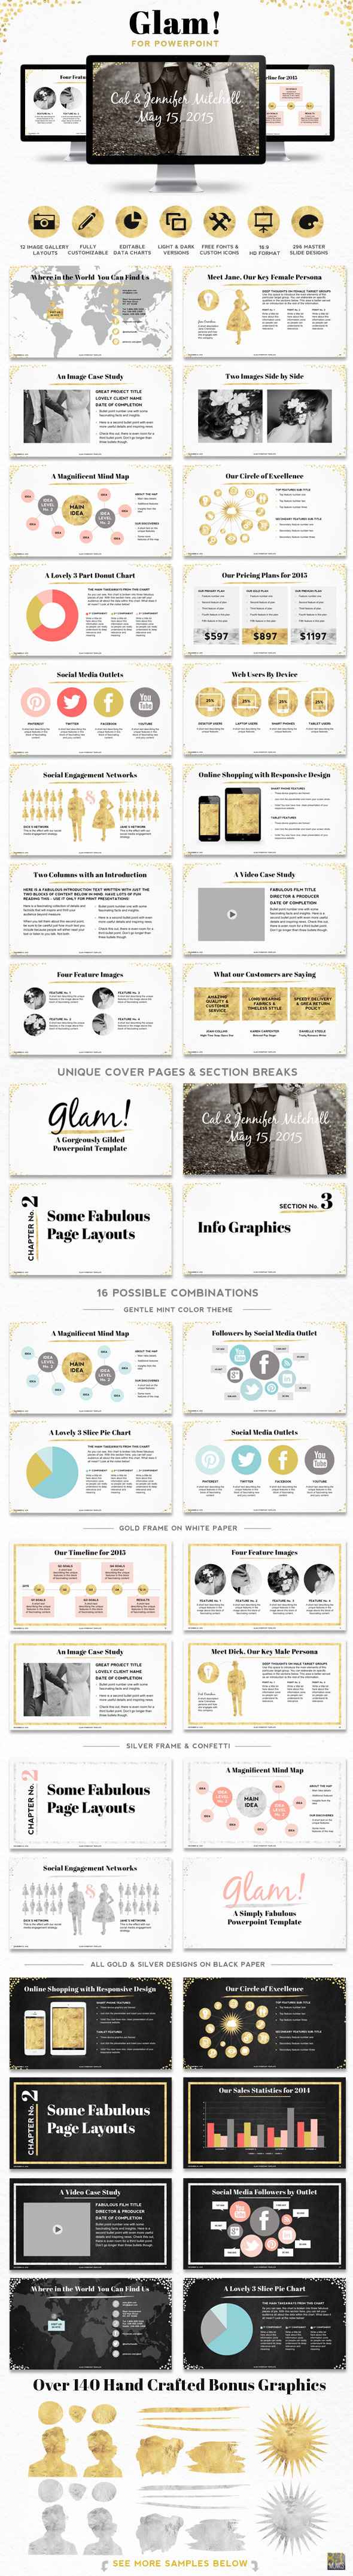 GraphicRiver Glam Powerpoint Presentation Template 9997018